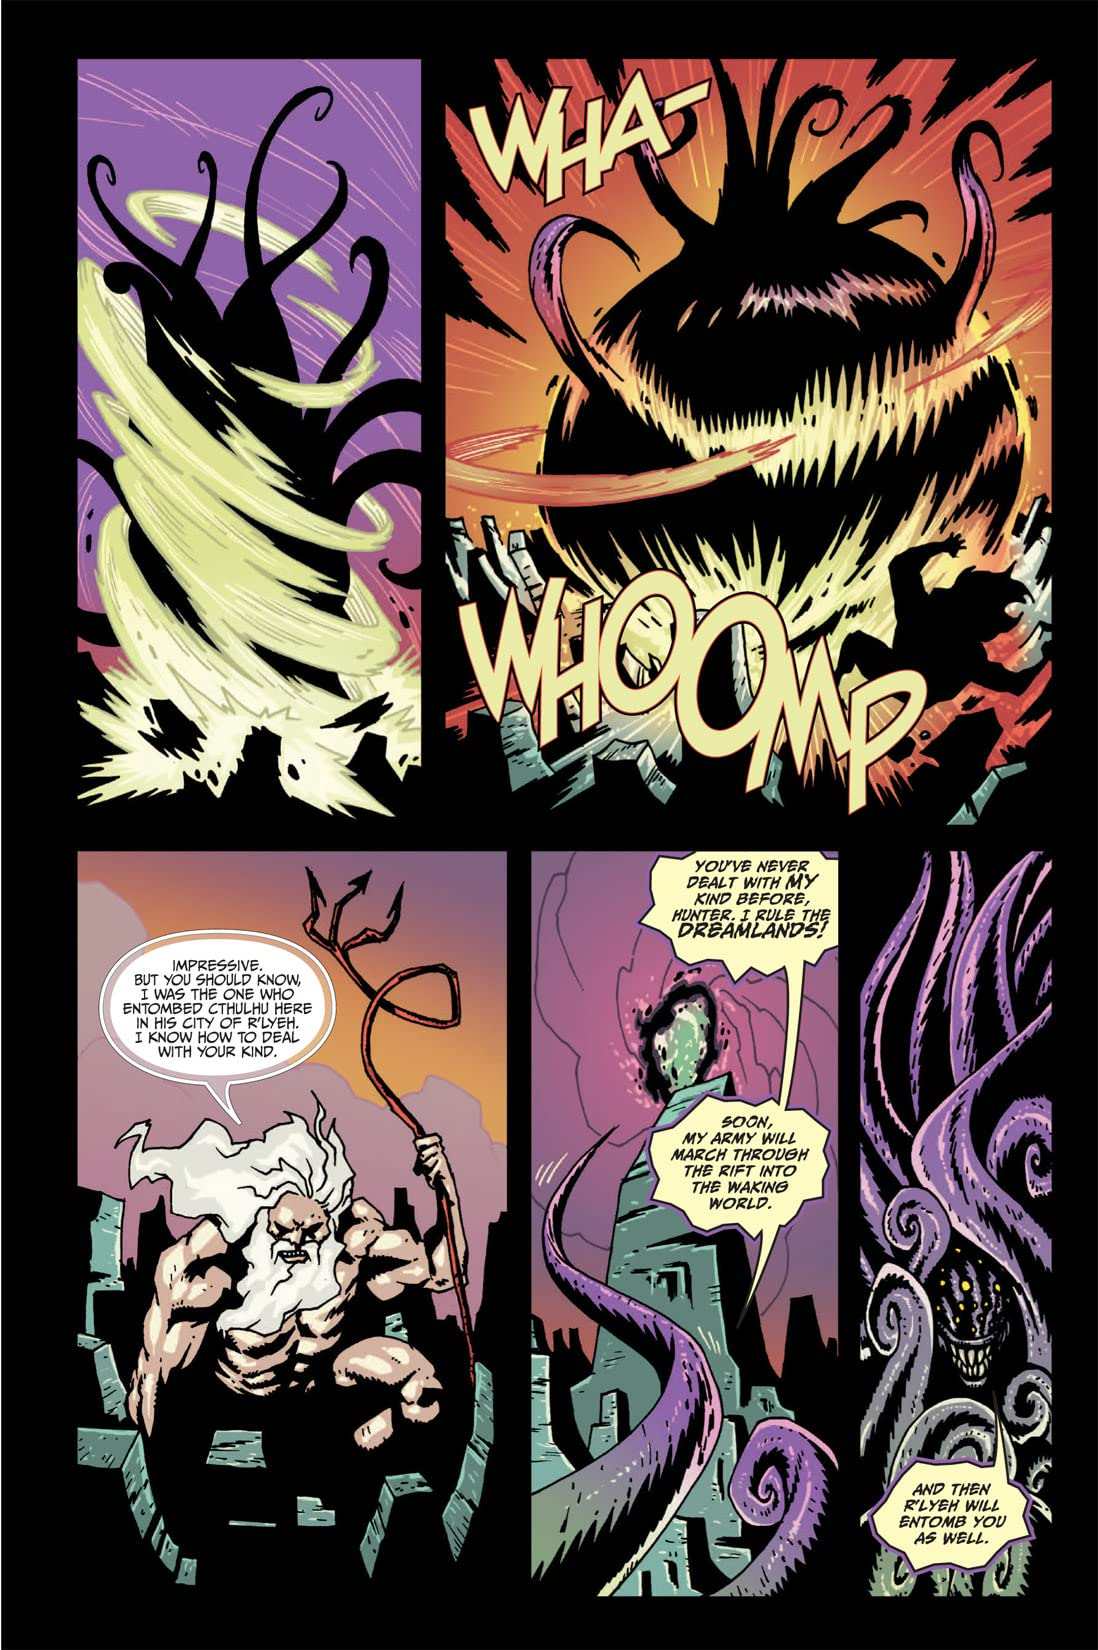 Fall of Cthulhu Vol. 5: Apocalypse #2 (of 4)